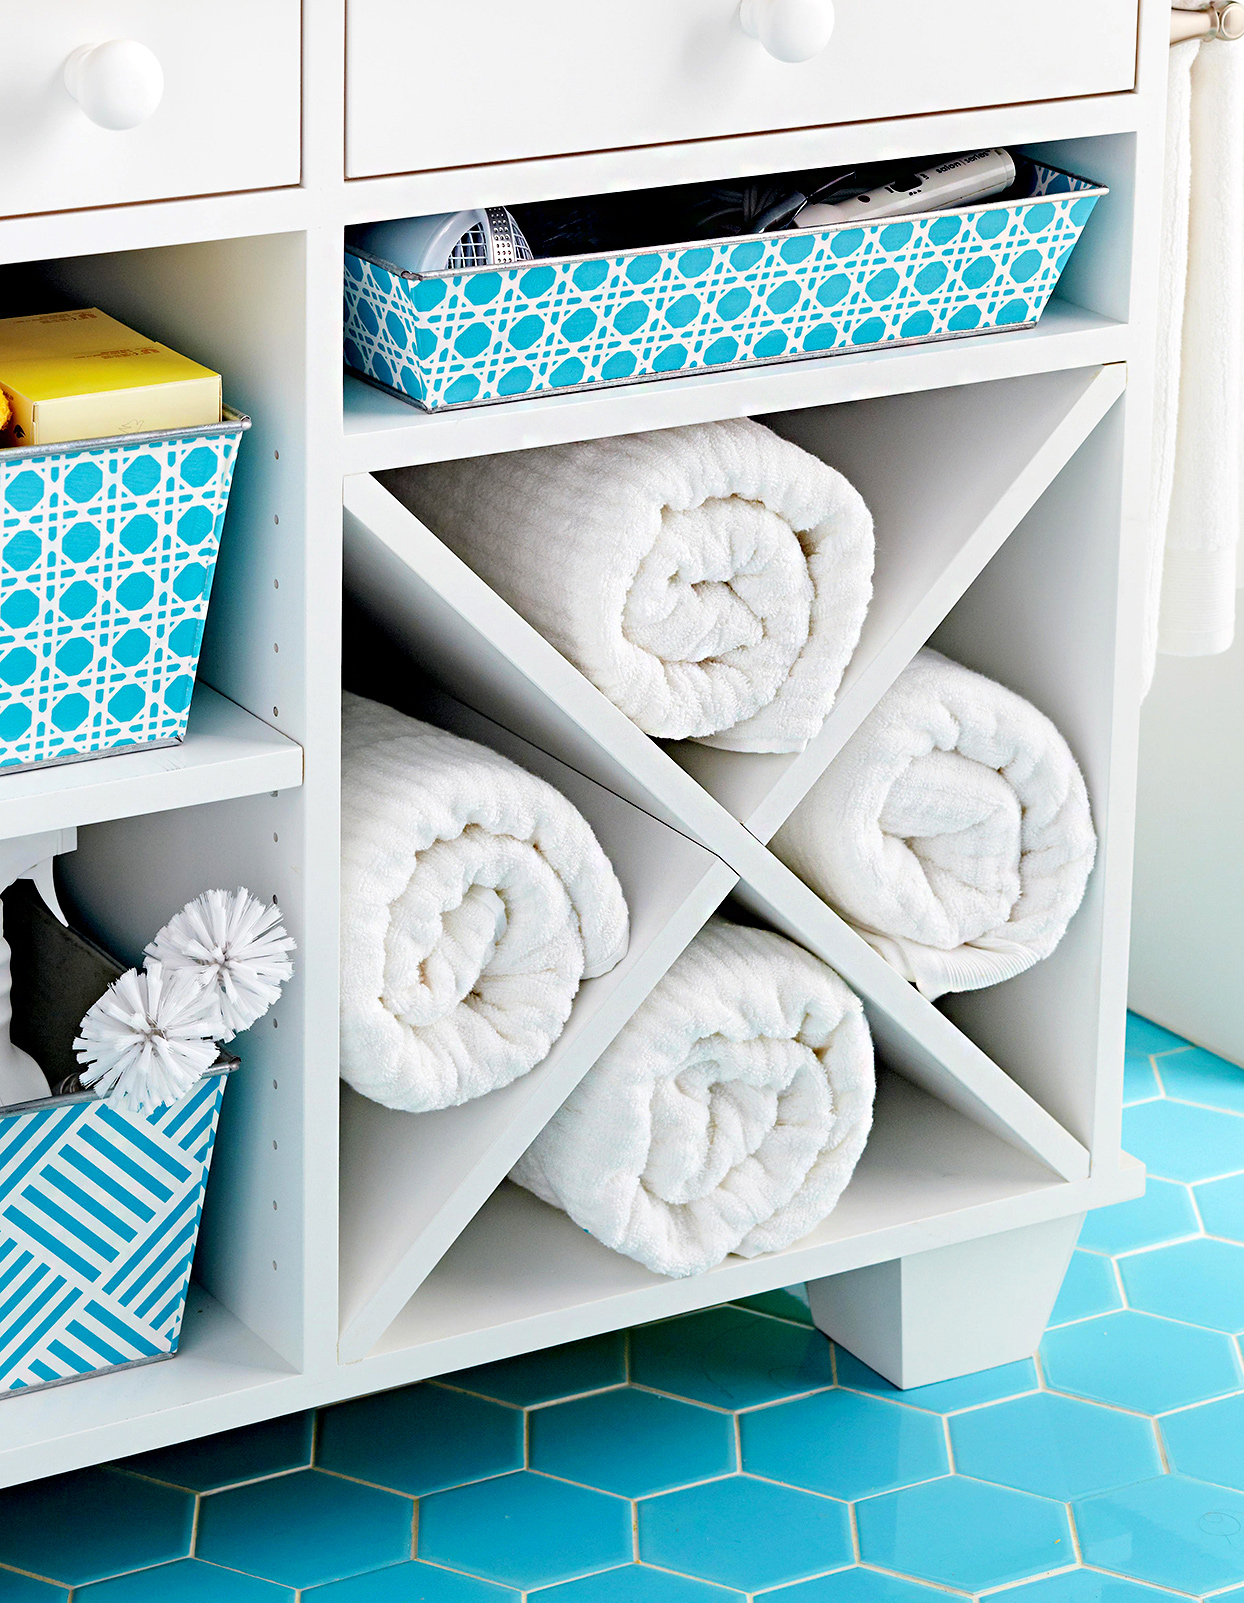 Towels stored in shelf